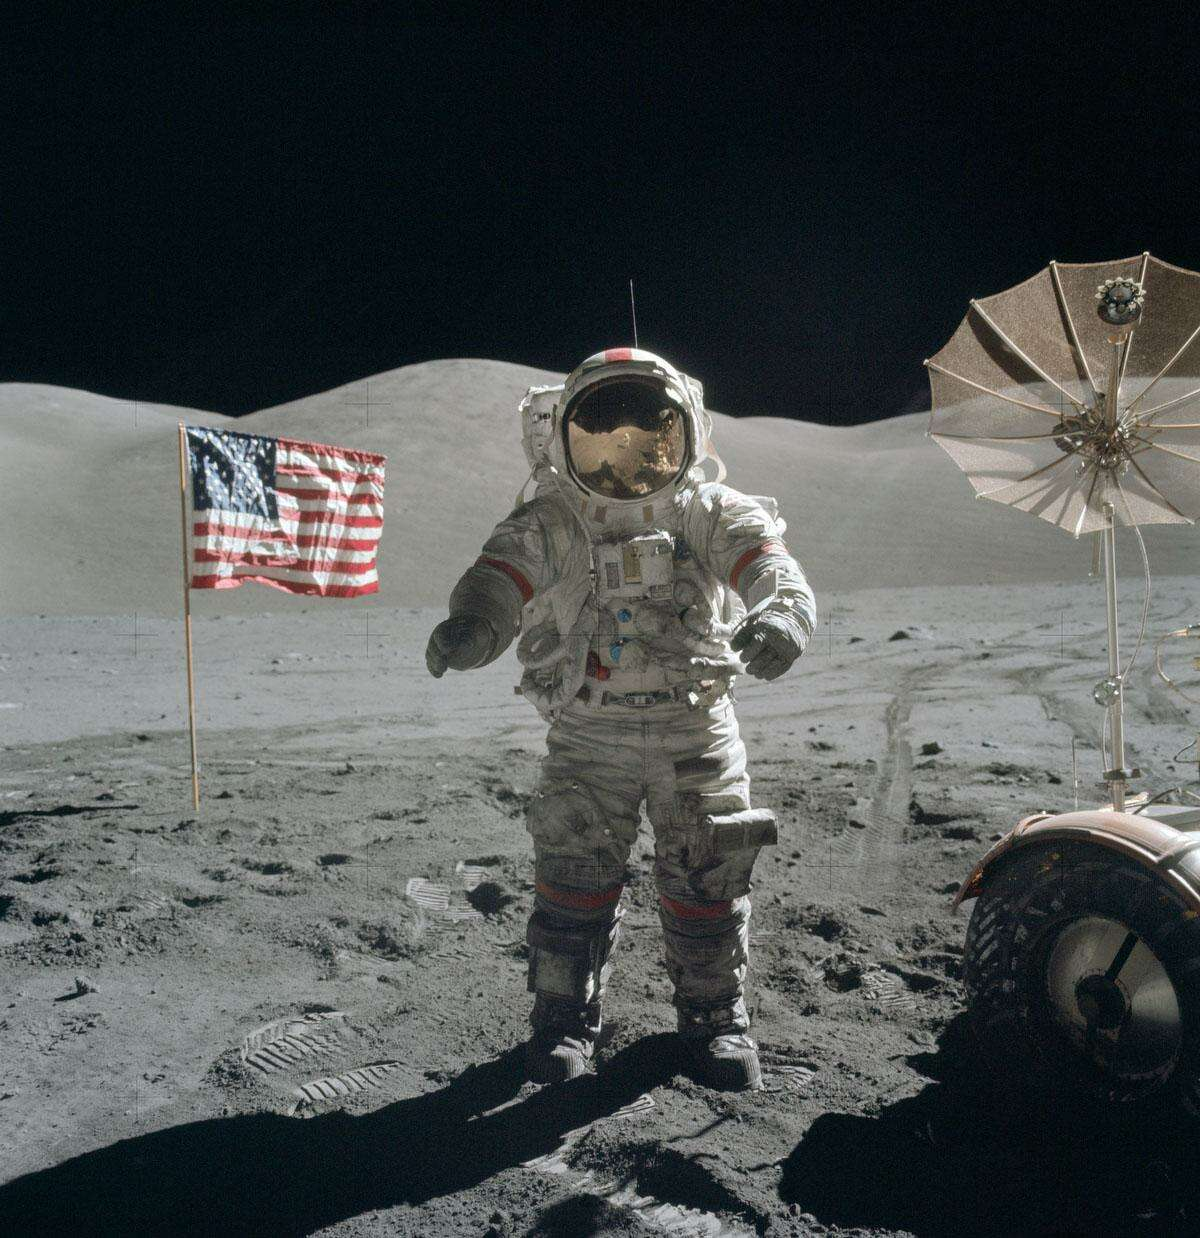 In December of 1972, Apollo 17 astronauts Eugene Cernan and Harrison Schmitt spent about 75 hours on the Moon, in the Taurus-Littrow valley, while colleague Ronald Evans orbited overhead. Near the beginning of their third and final excursion across the lunar surface, Schmitt took this picture of Cernan flanked by an American flag and their lunar rover's umbrella-shaped high-gain antenna. The prominent Sculptured Hills lie in the background while Schmitt's reflection can just be made out in Cernan's helmet. The Apollo 17 crew returned with 110 kilograms of rock and soil samples, more than from any of the other lunar landing sites. And after thirty years, Cernan and Schmitt are still the last to walk on the Moon.